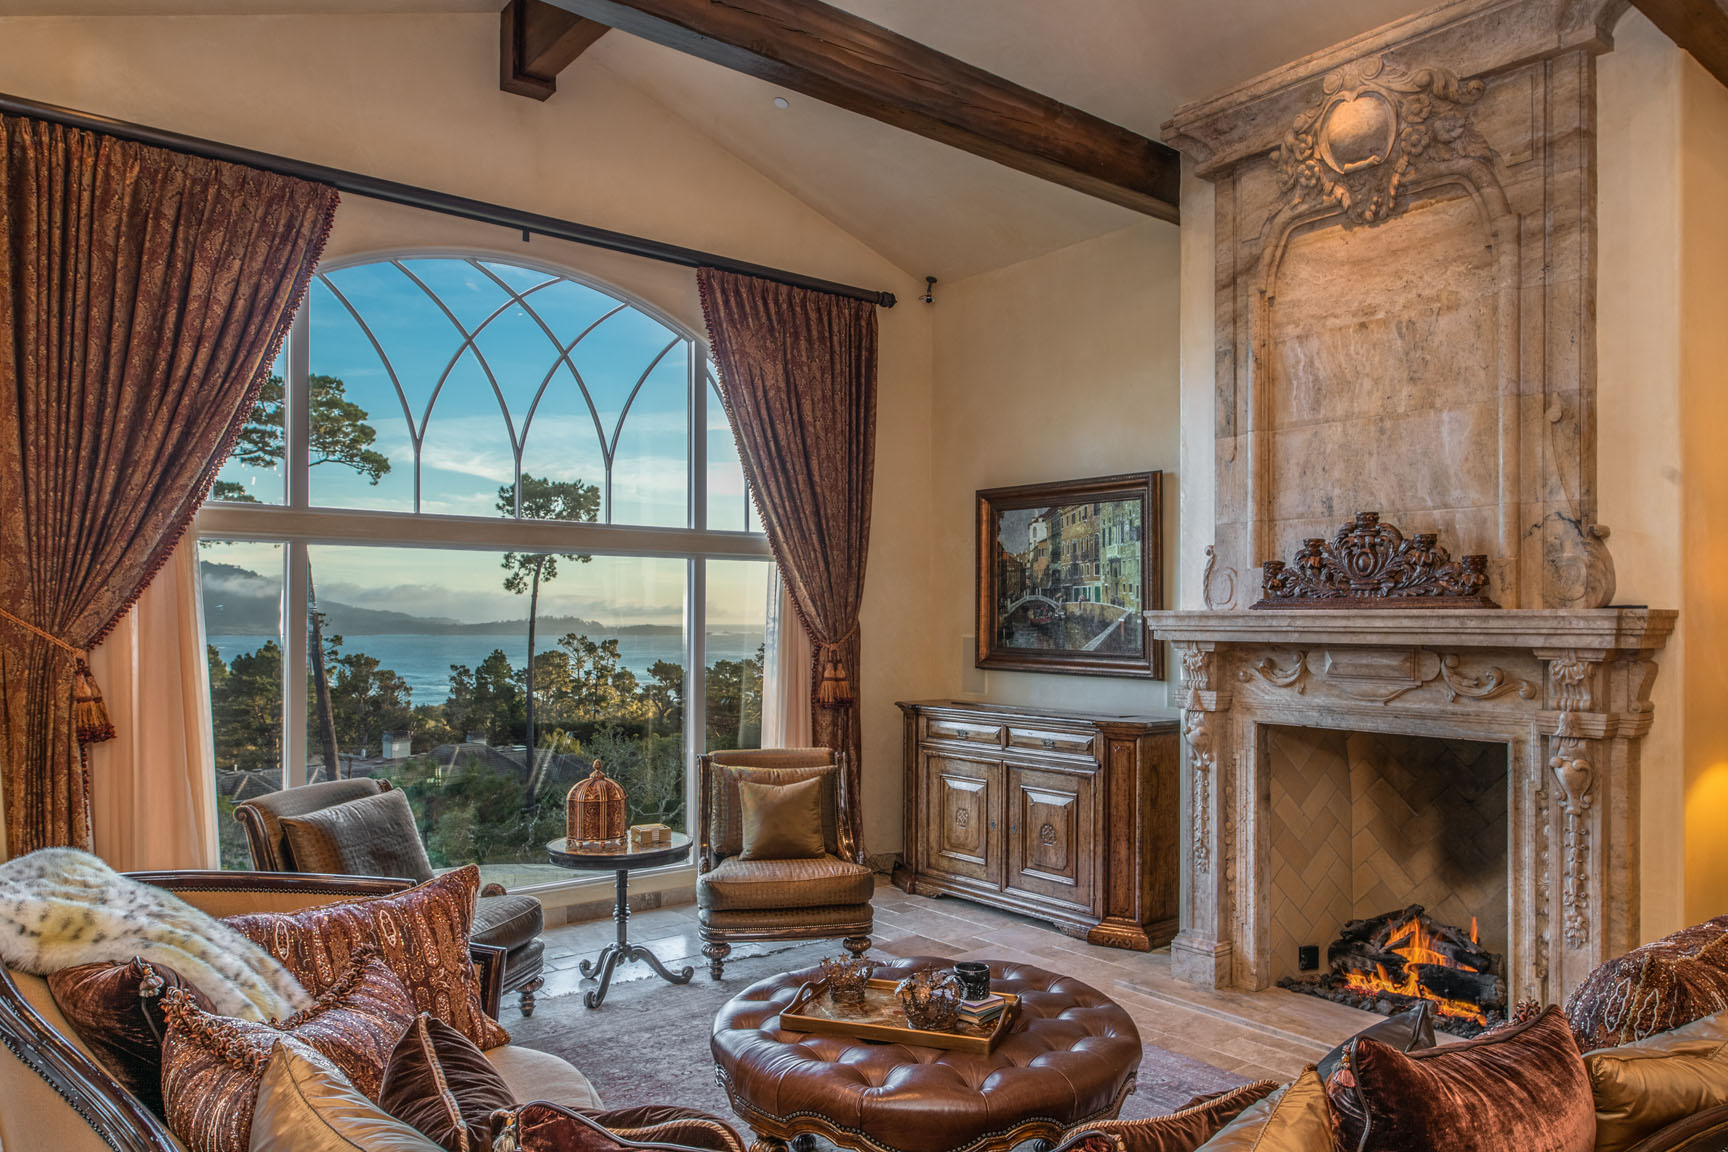 Pebble Beach Luxury Ocean View Home for sale